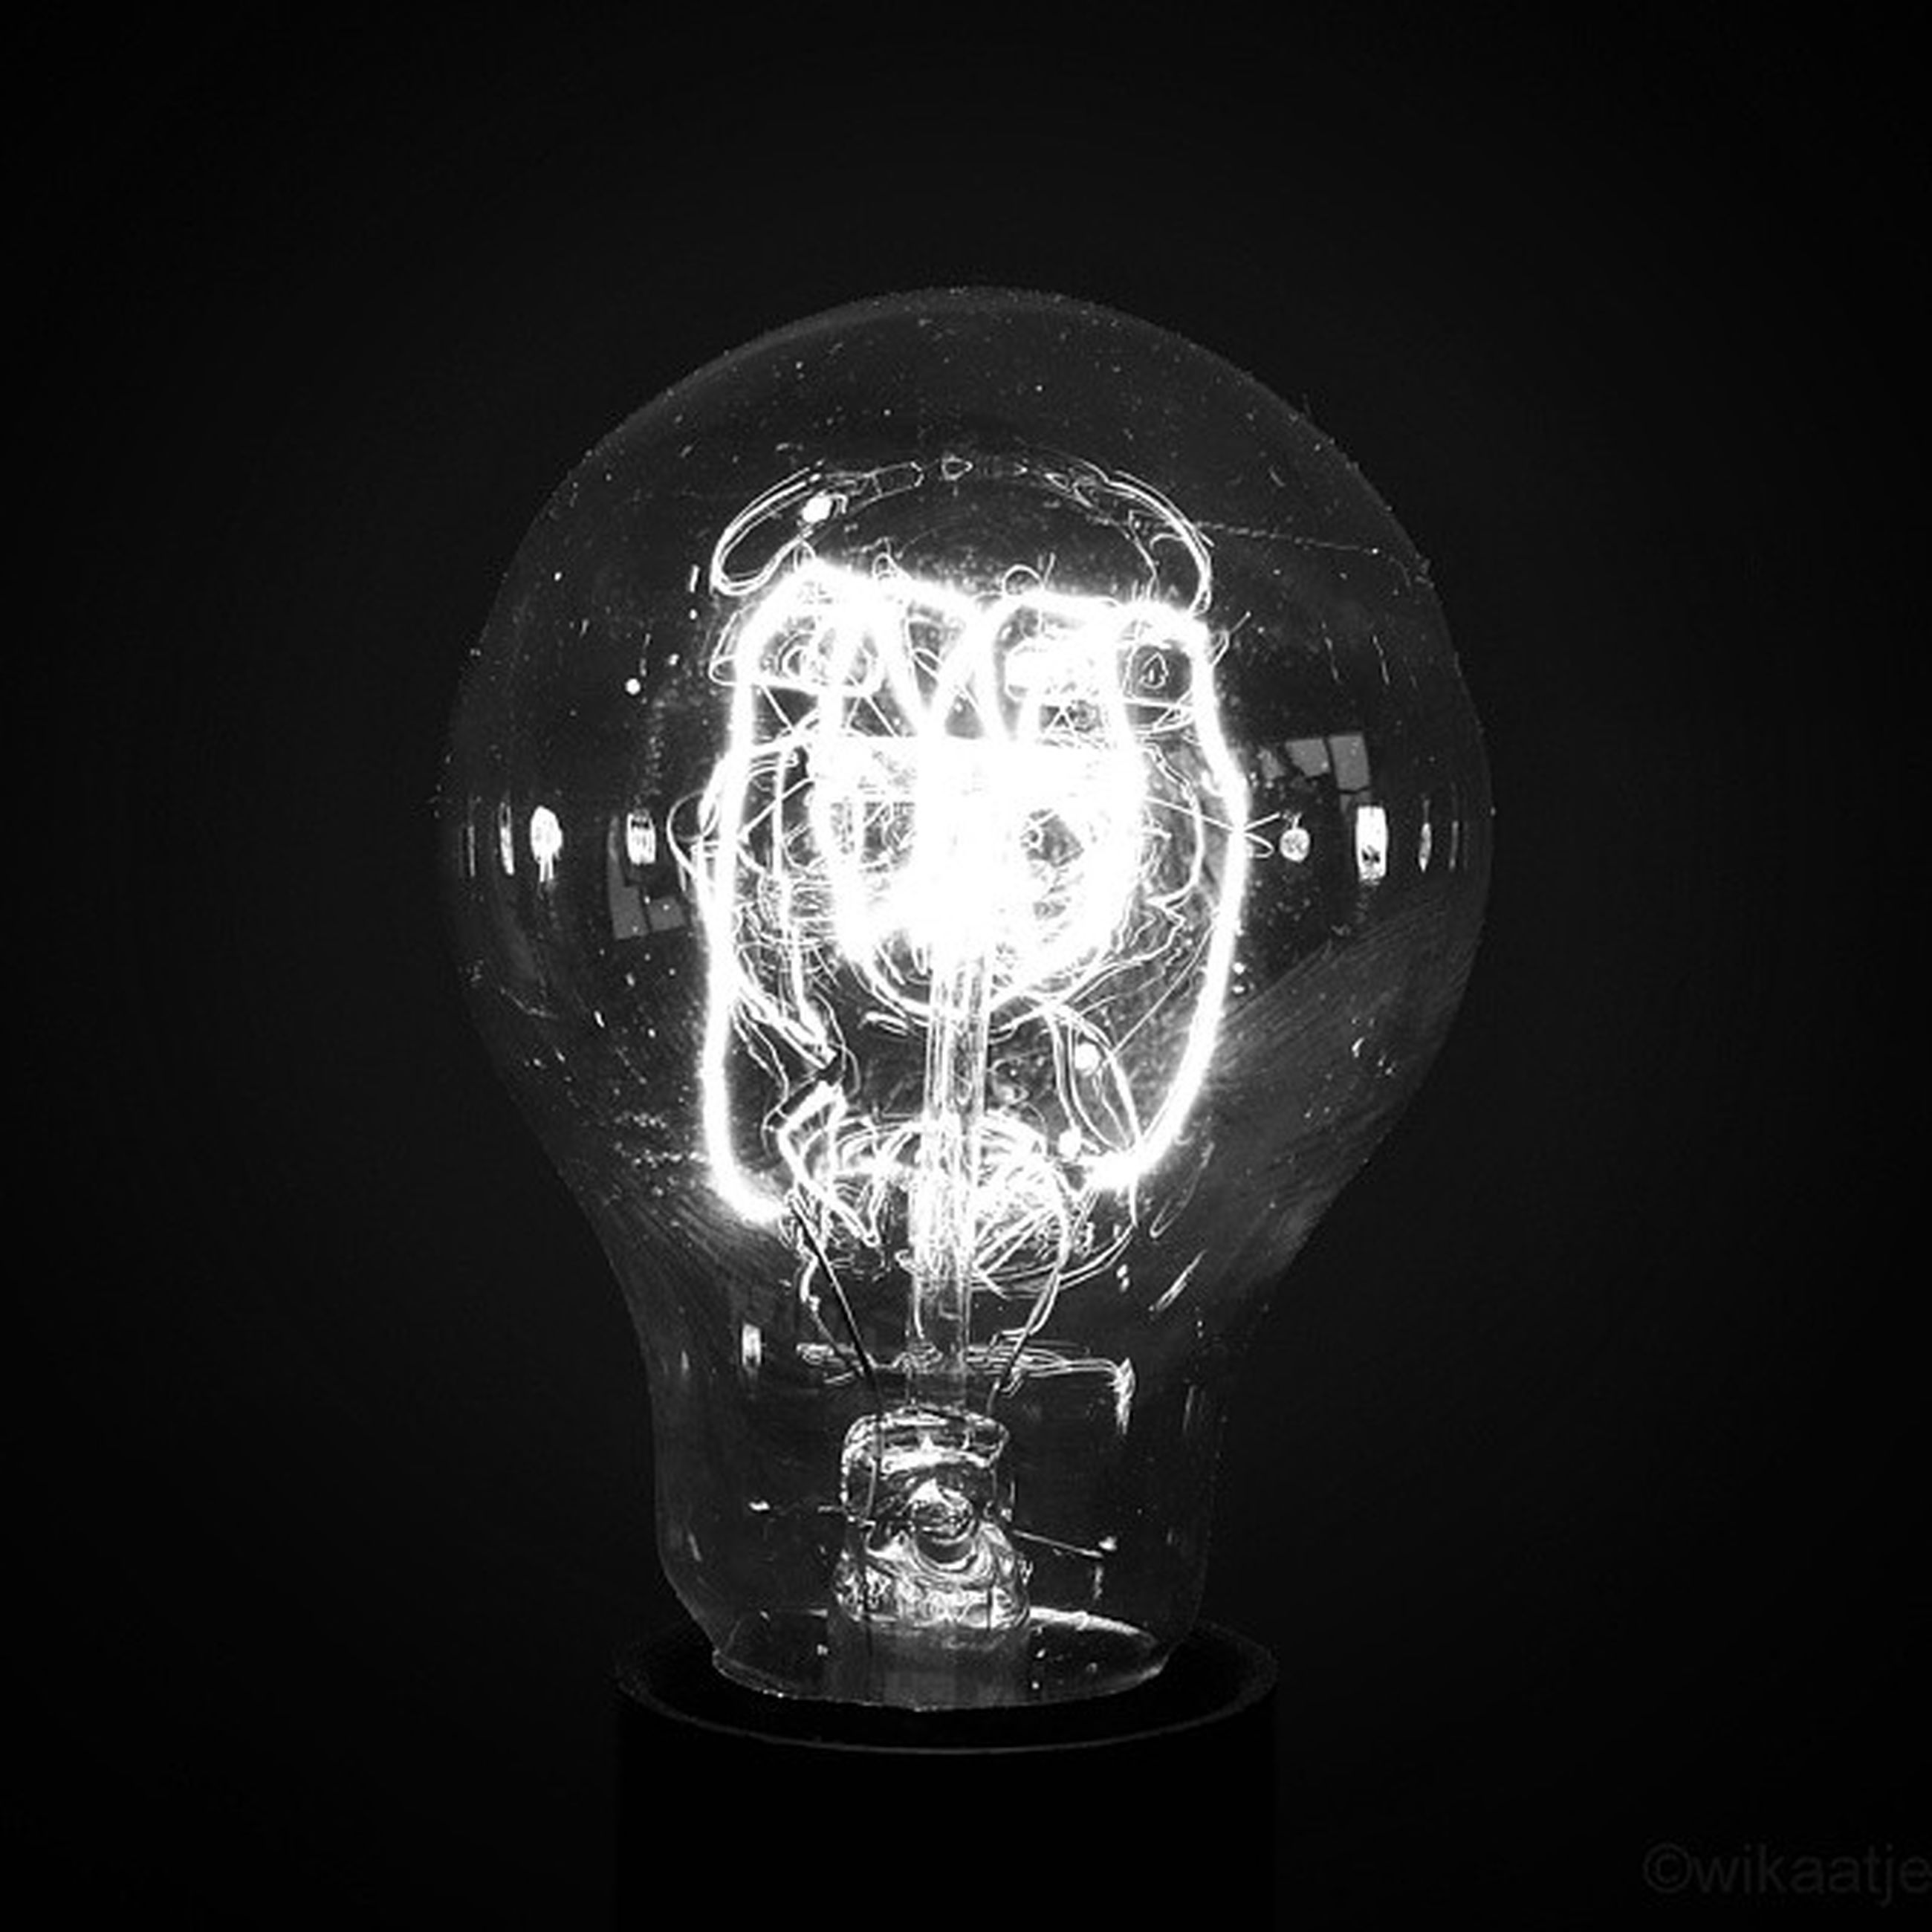 indoors, studio shot, illuminated, close-up, lighting equipment, black background, glass - material, light bulb, electricity, single object, transparent, dark, glowing, still life, copy space, night, darkroom, no people, technology, reflection